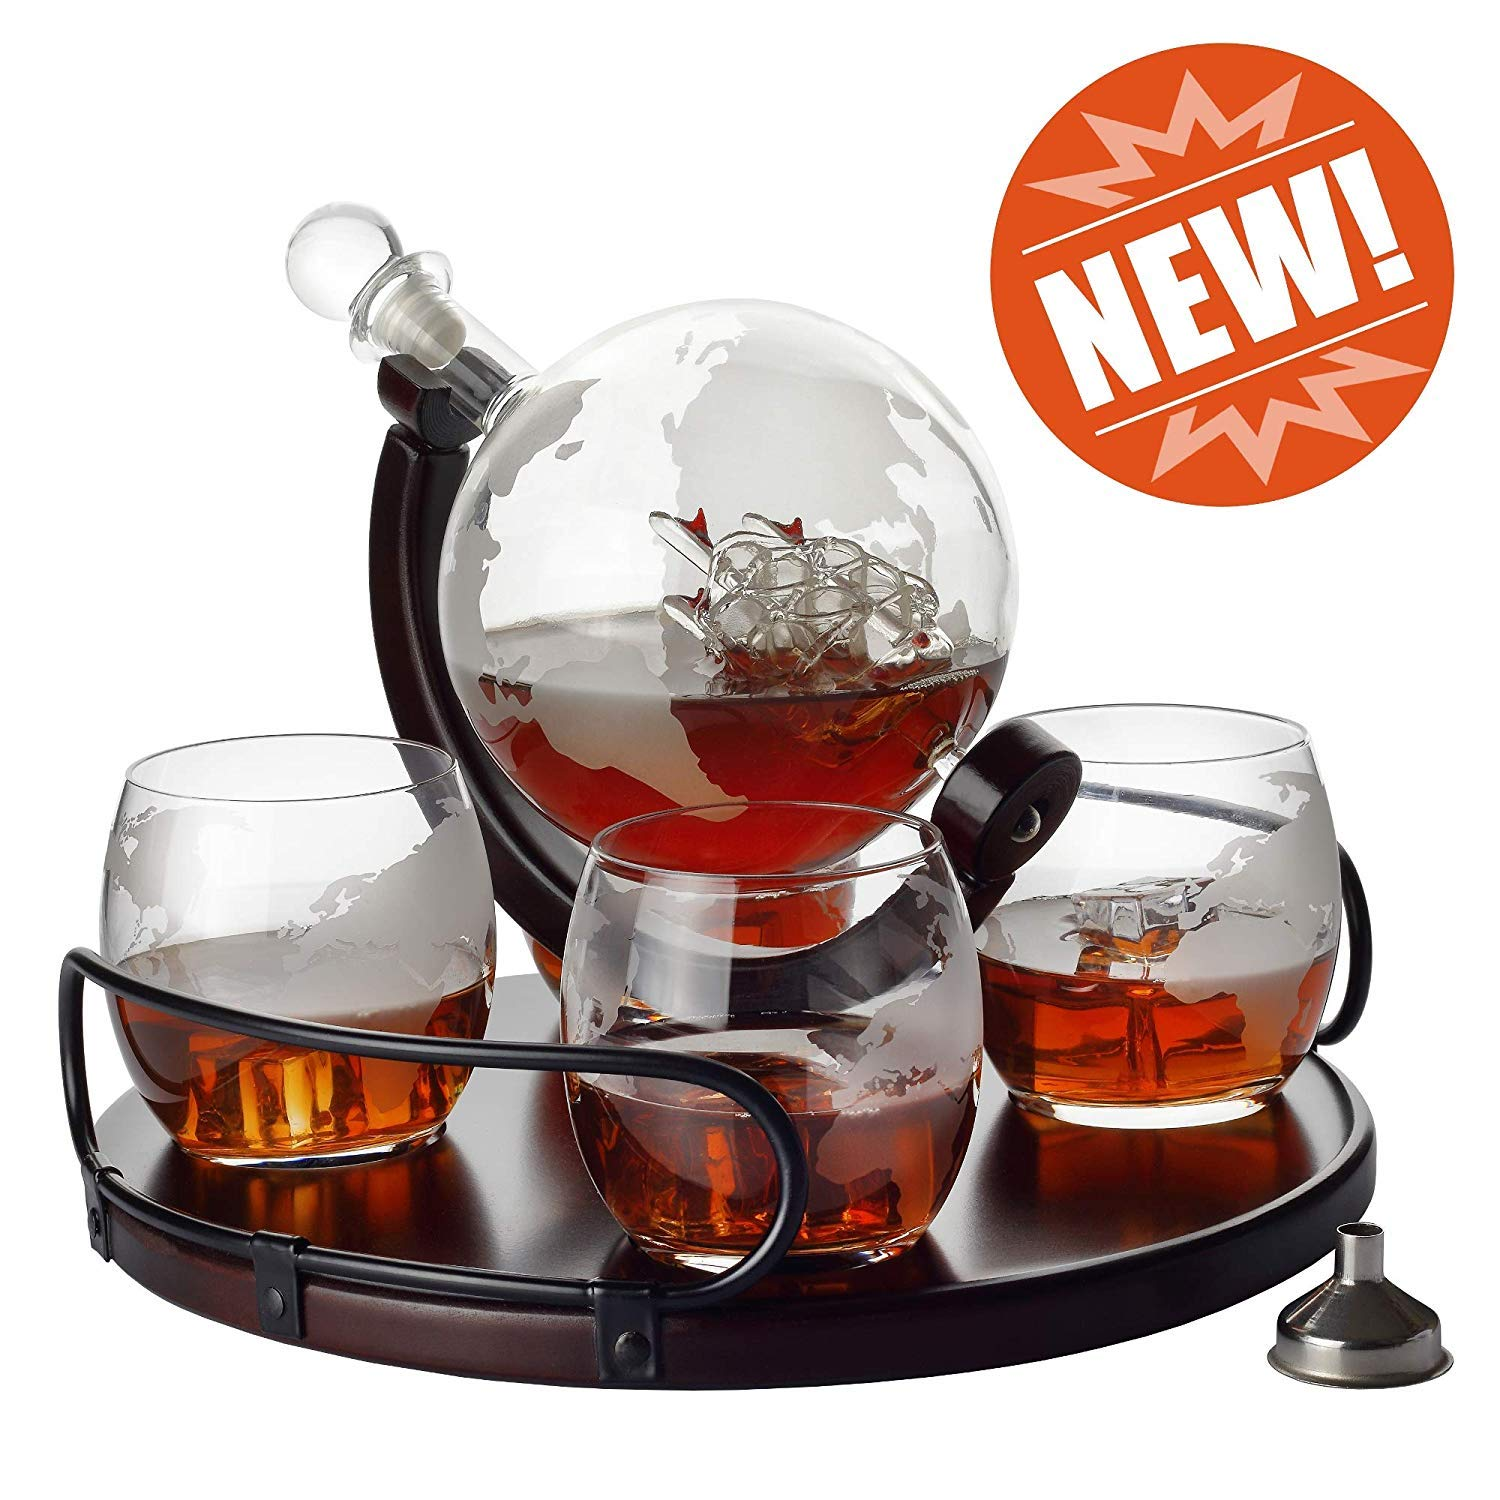 Whiskey Decanter Etched Globe NEW 2019 Gift Set- 4 glasses with NEWEST Wood Stand & Handles - Perfect Gift Set for Liquor, Scotch, Bourbon, Vodka by Kemstood